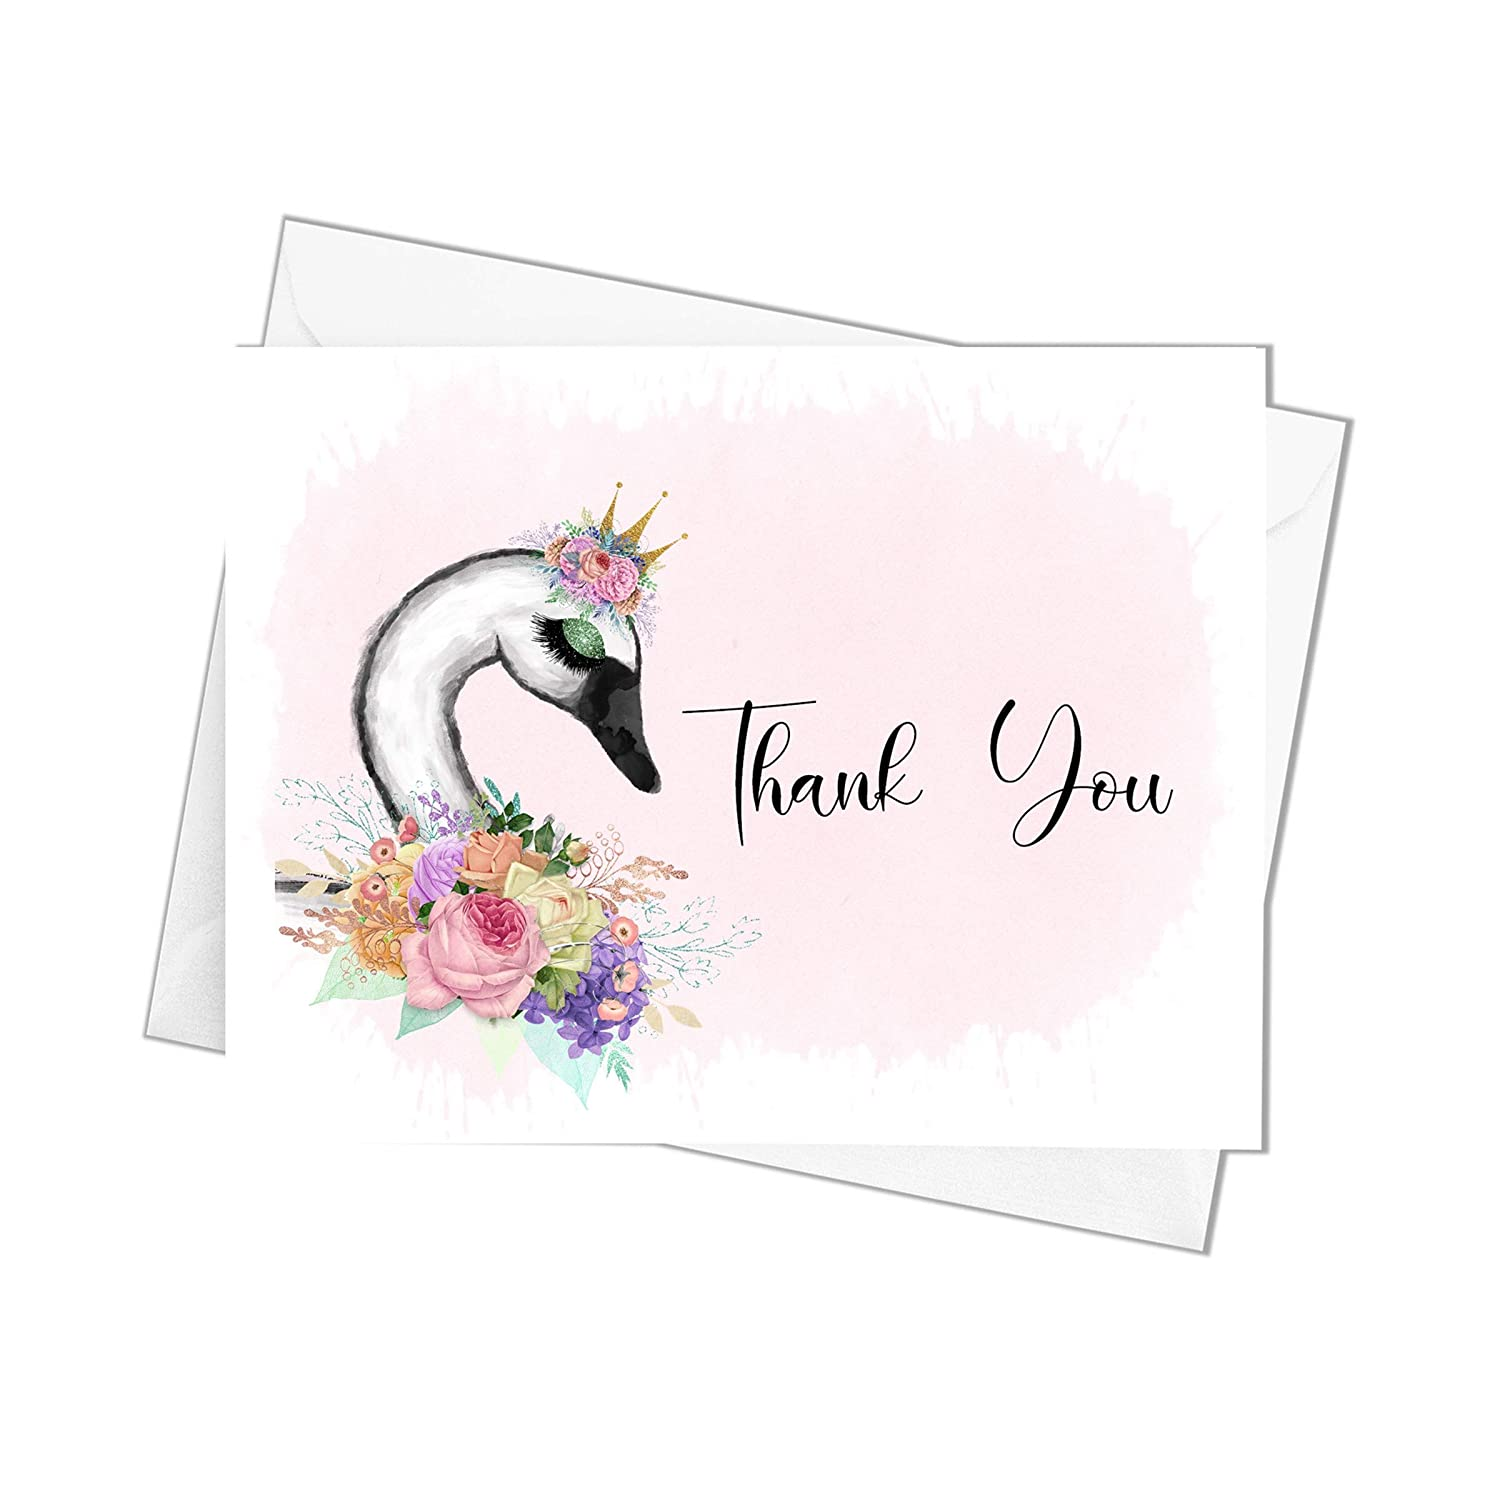 Swan Themed Thank You Cards Shower All stores are sold Special price for a limited time with Envelopes Baby Yo